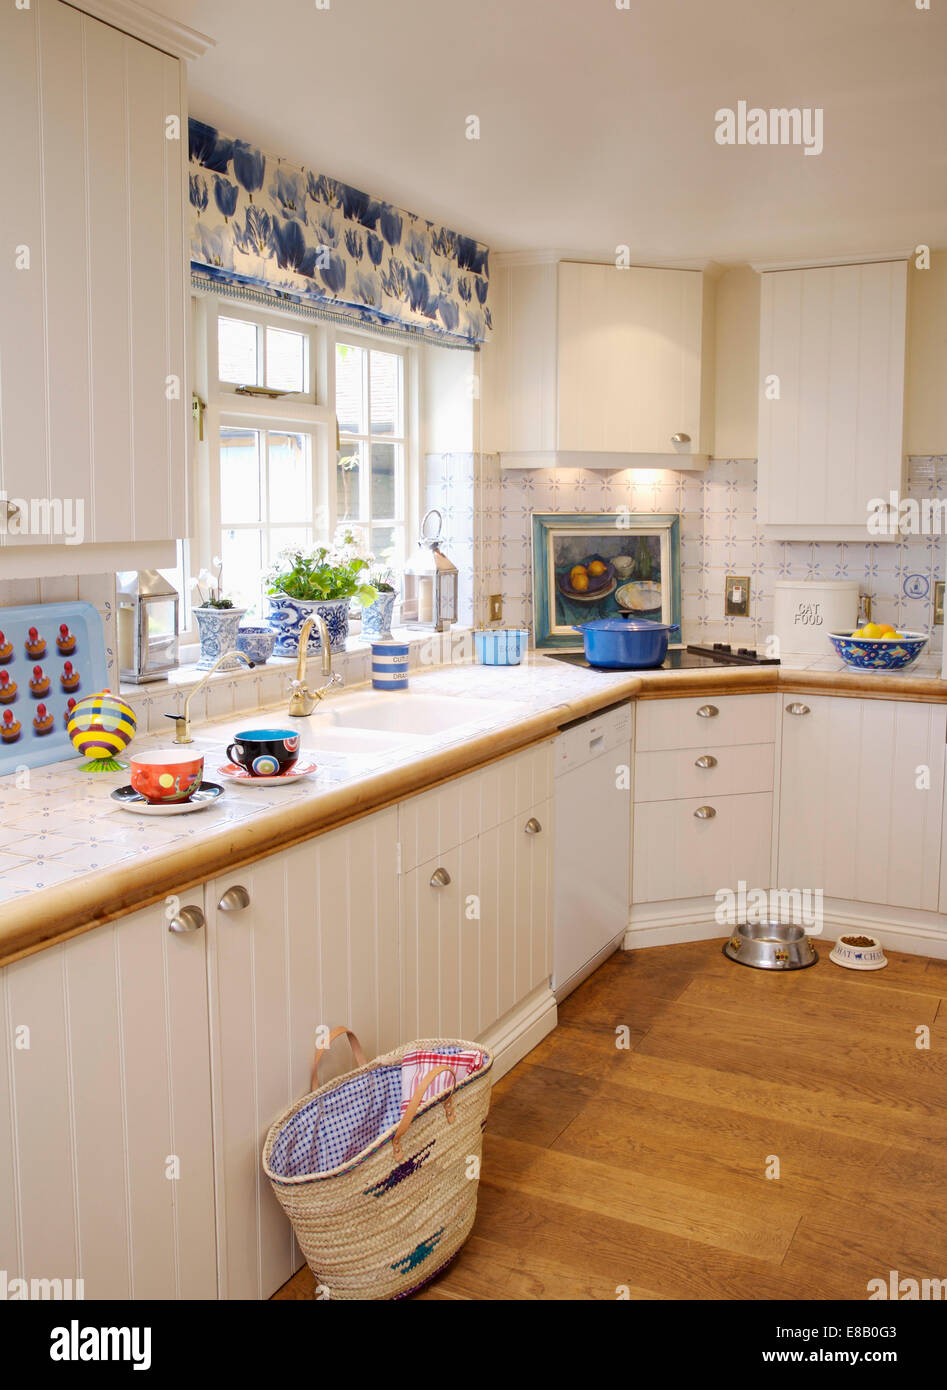 Shopping Basket On Wooden Floor In Cottage Kitchen With Cream Units And  Blue And White Blind